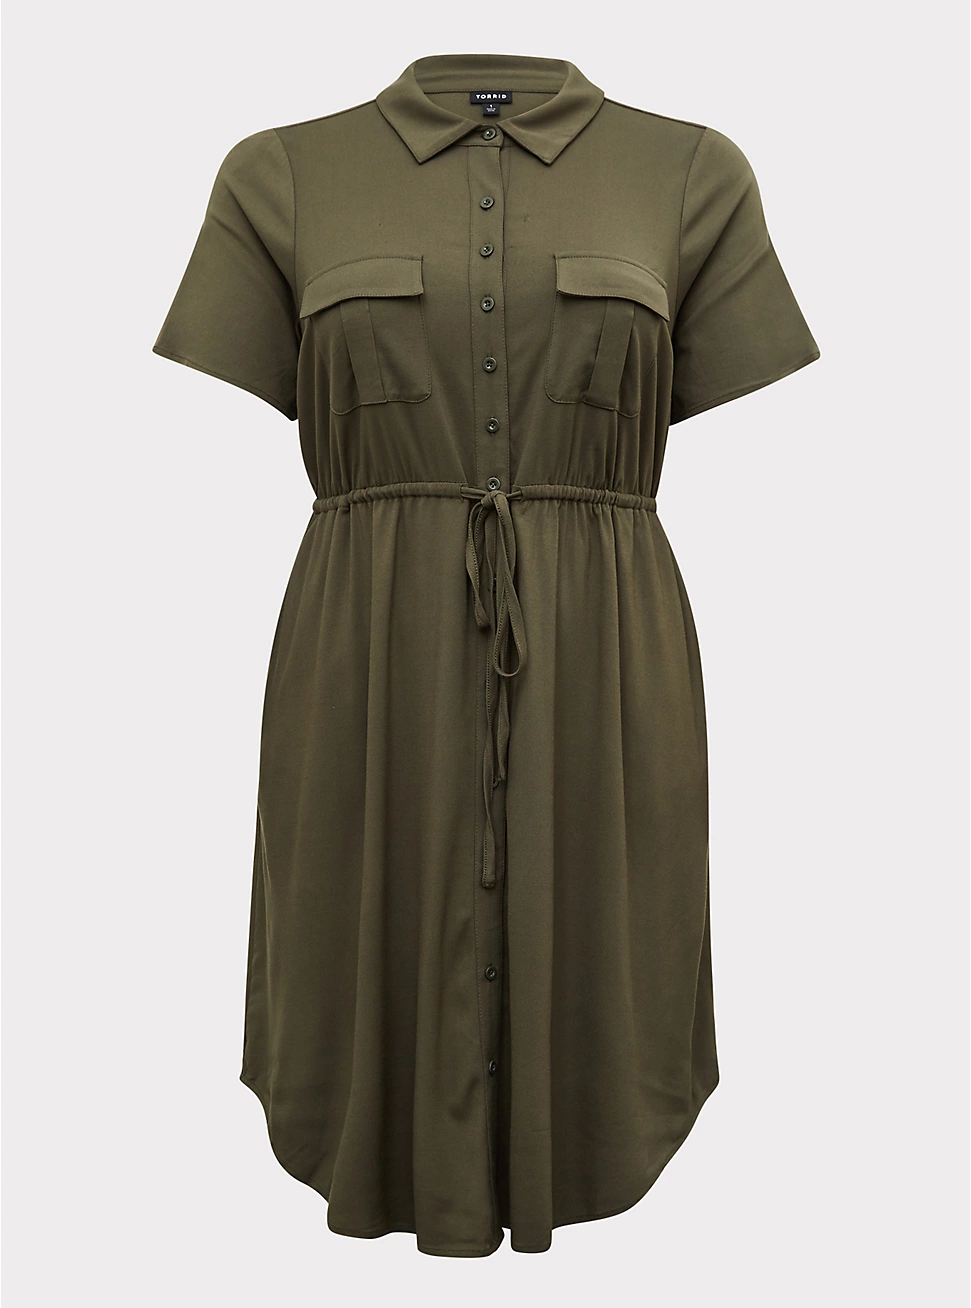 one of the best things to wear while photographing a wedding - a stylish dress with pockets in a neutral color